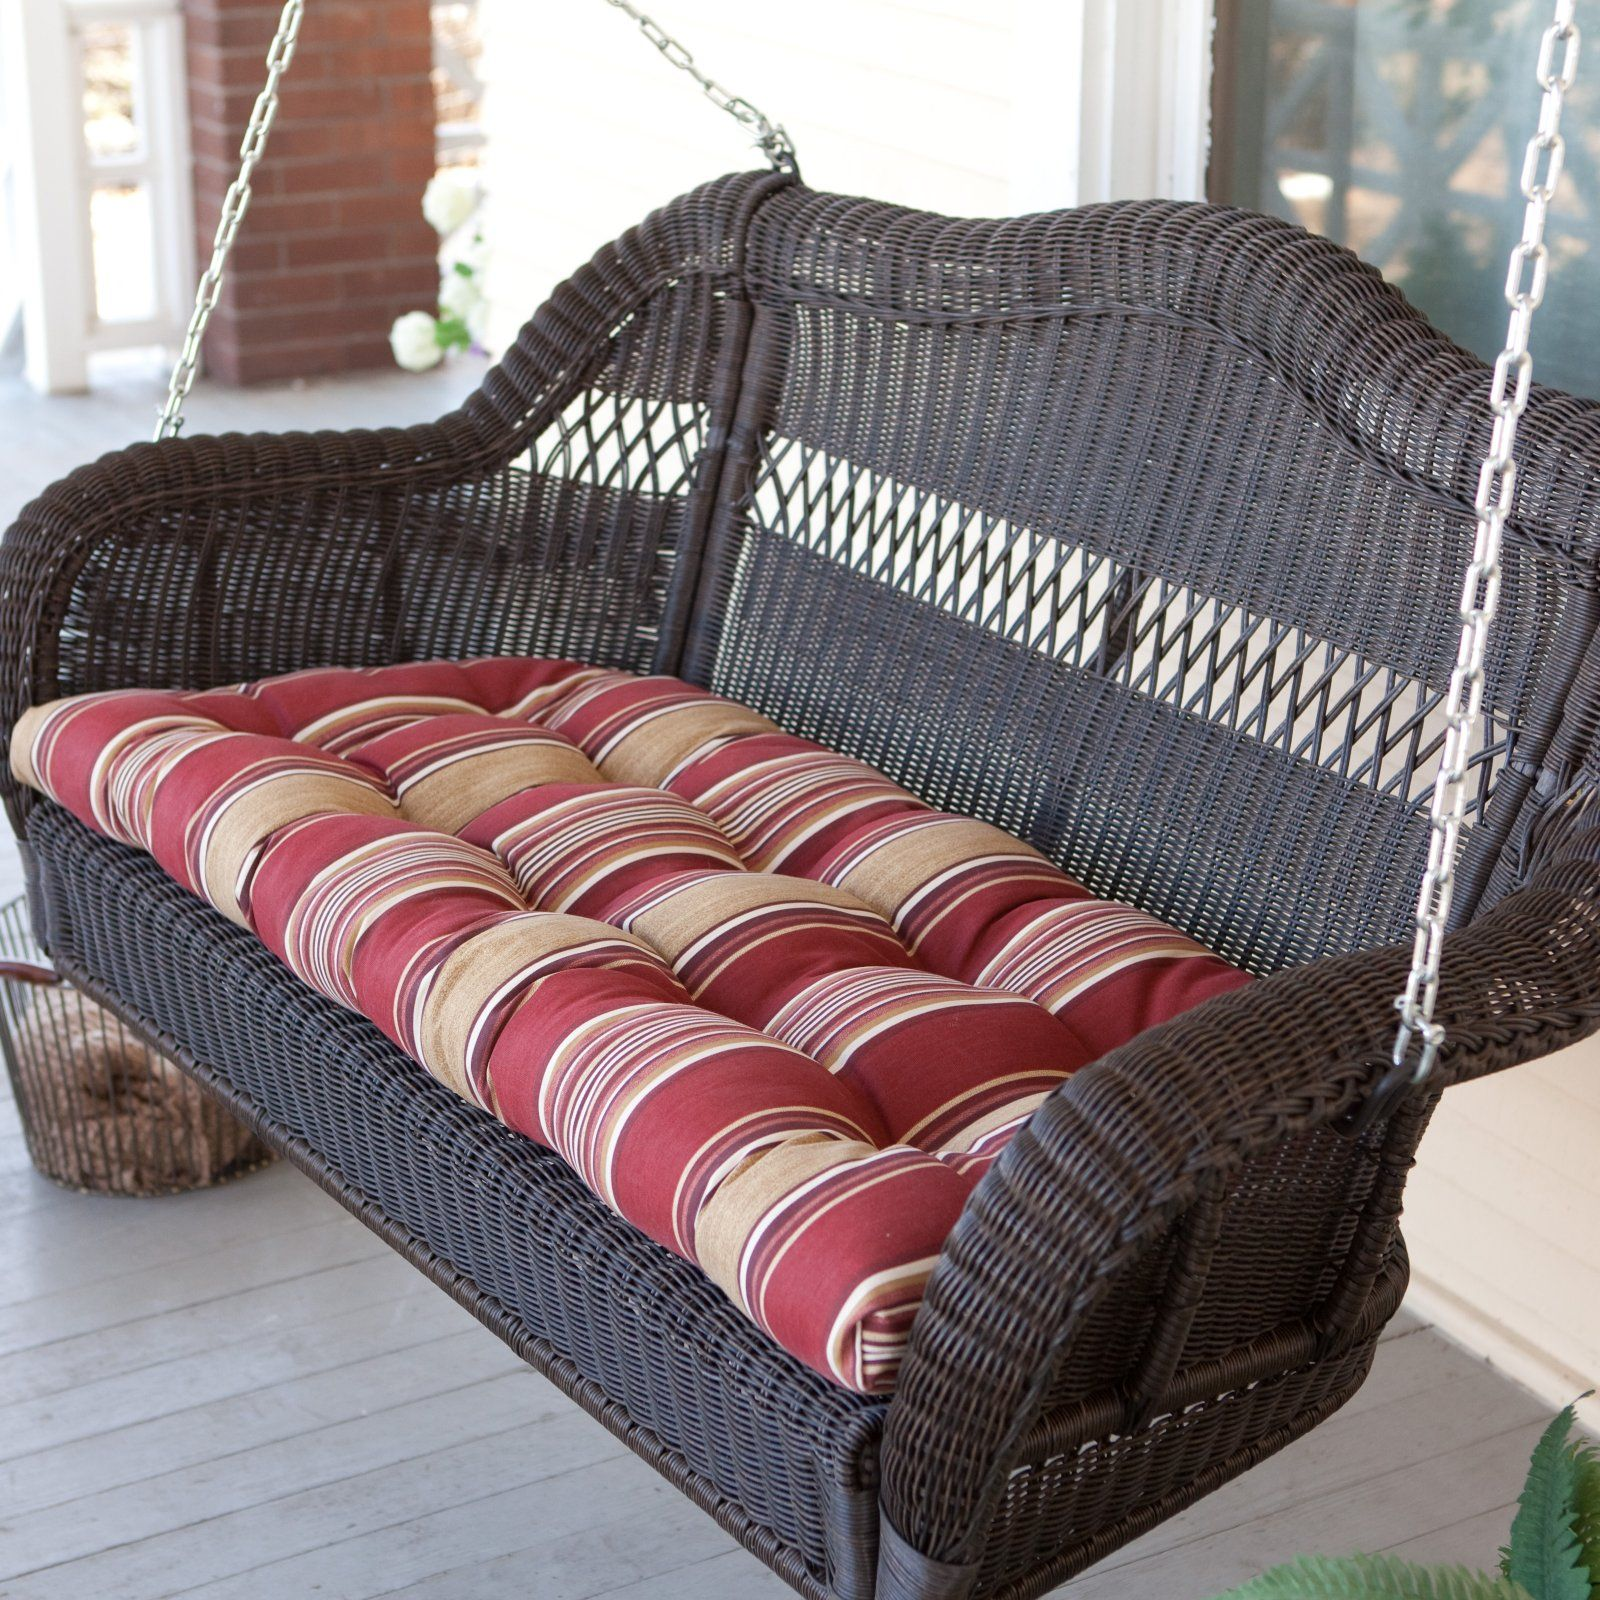 Casco Bay Resin Wicker Porch Swing   Wicker Chairs U0026 Seating At Hayneedle